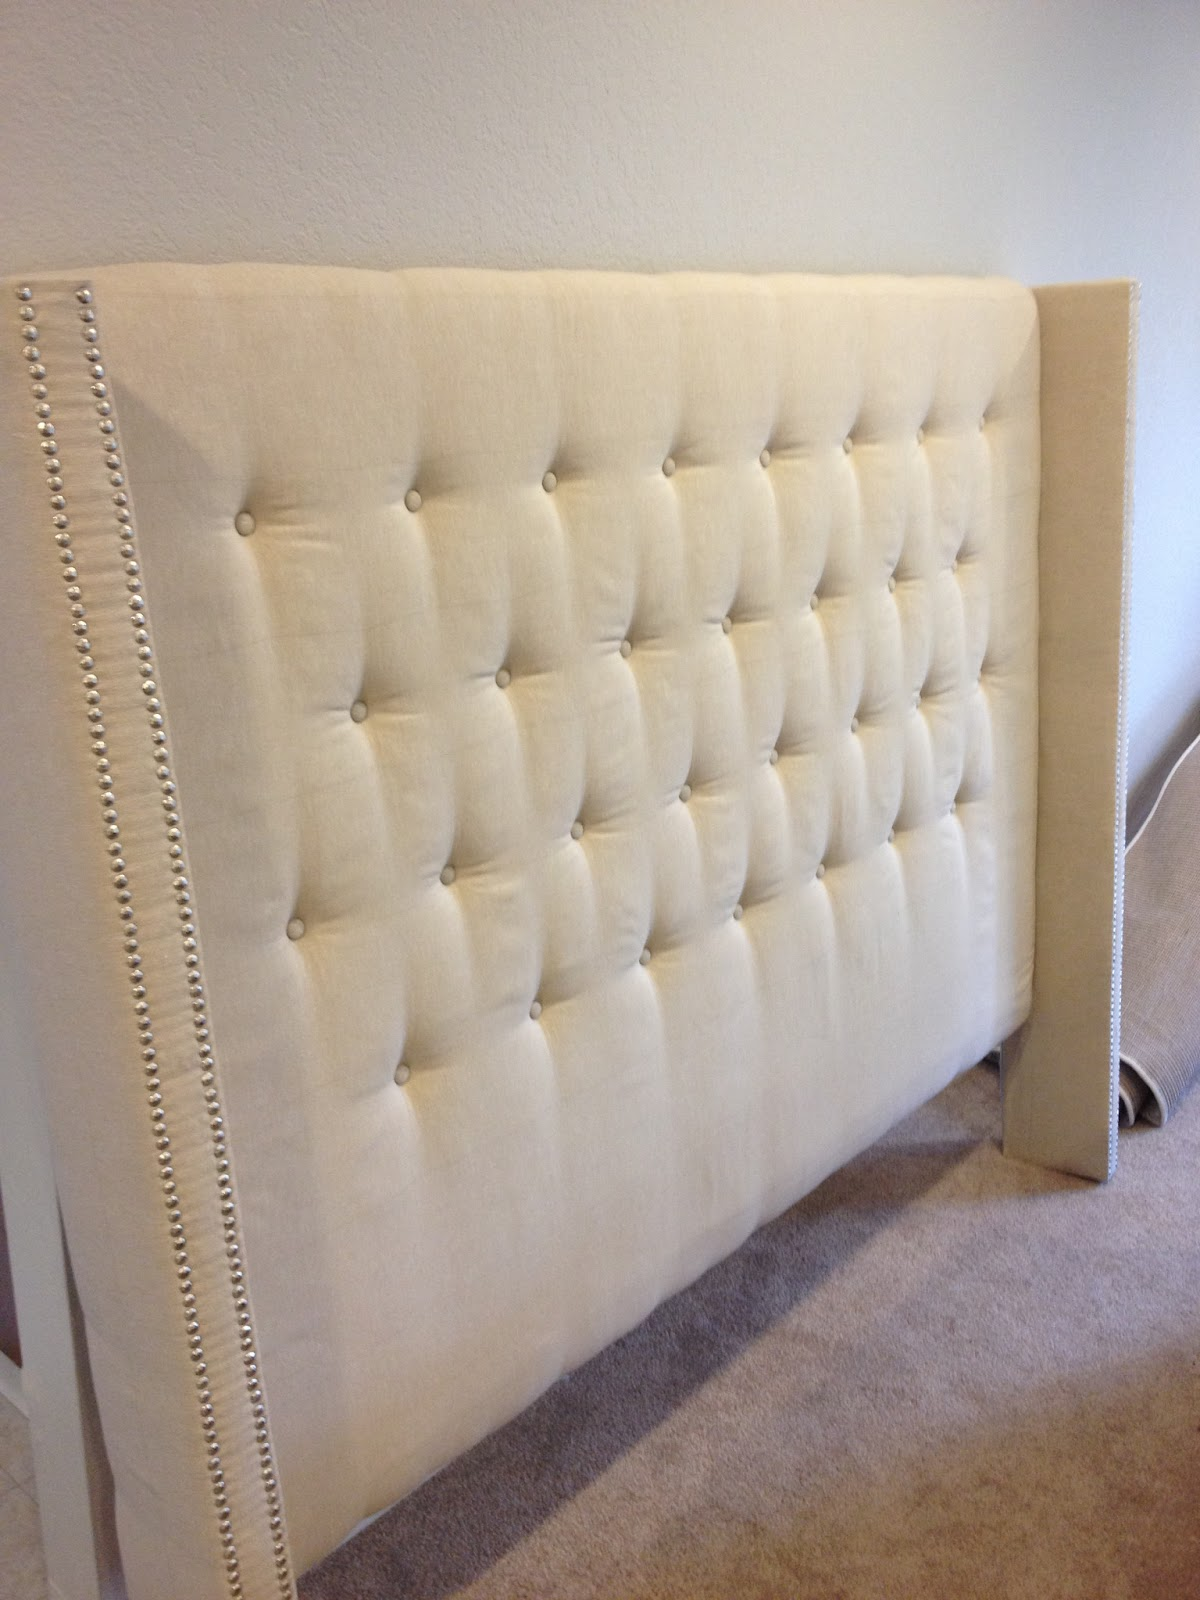 head parts headboard one size trim piece and nail but join decor steps diy had same two single the as with to education instead mdf red upholstered i which cut how a of make tutorial t process last followed pieces have my didn together separate